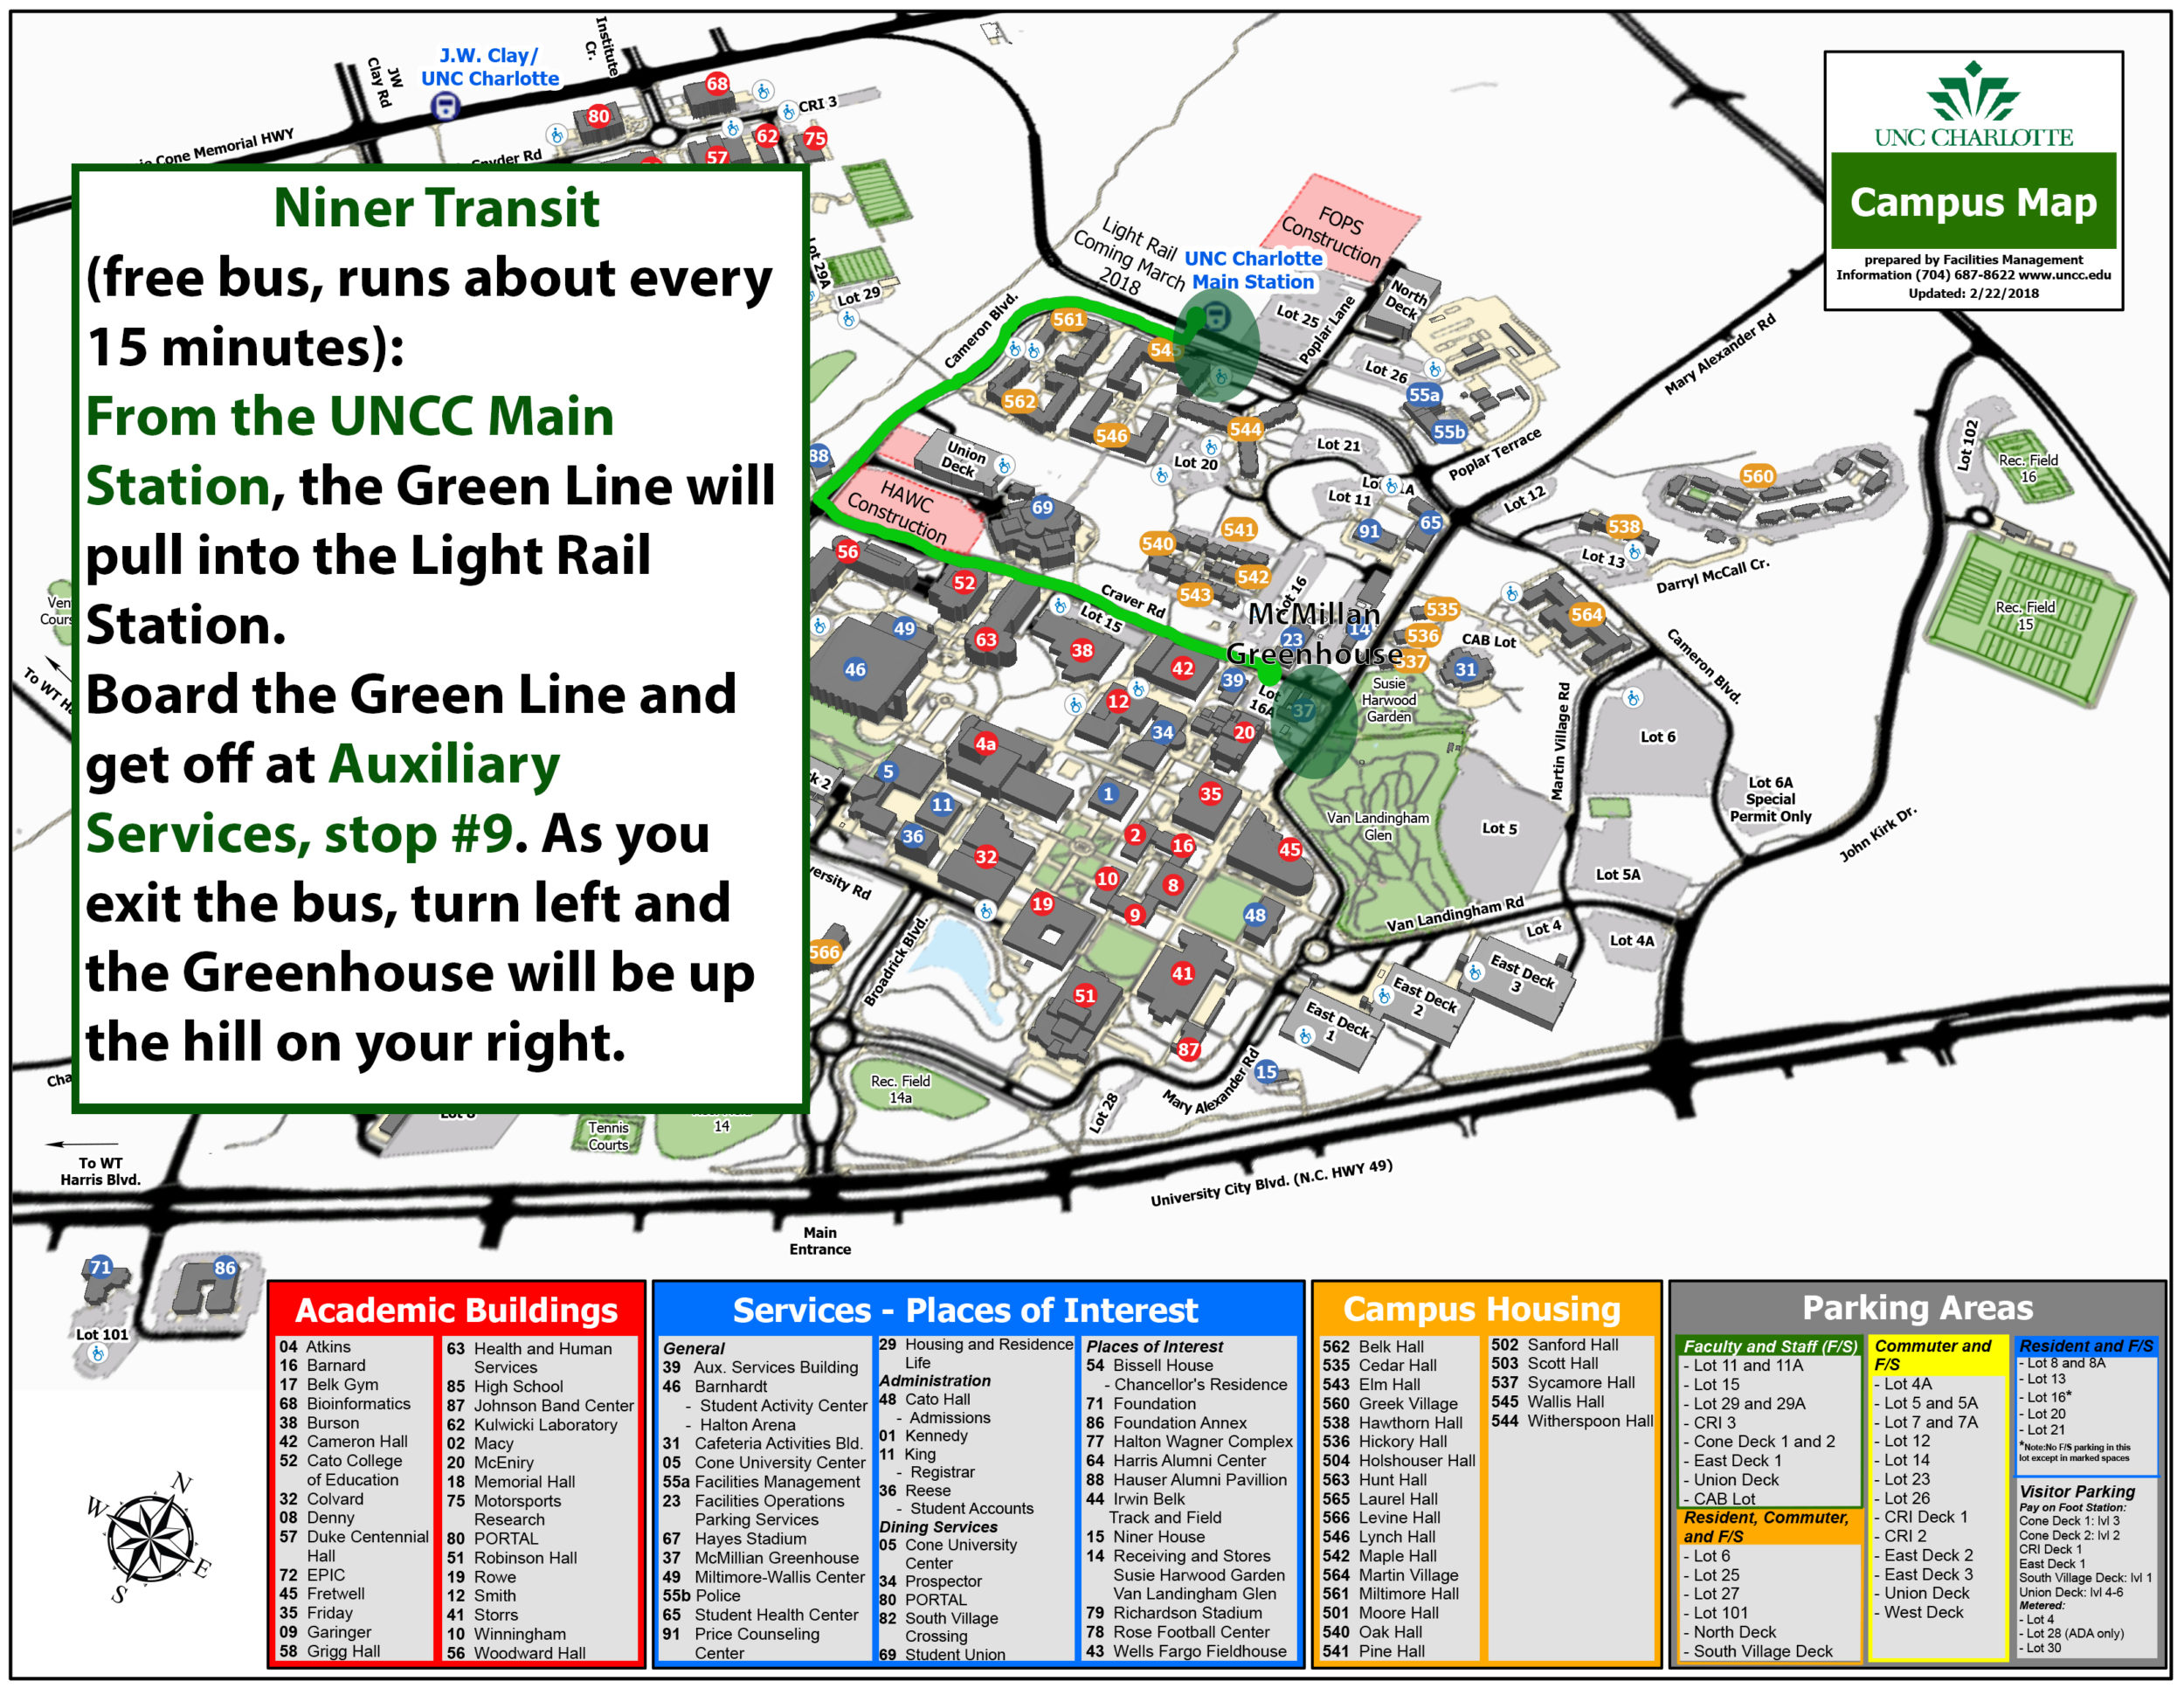 Botanical Gardens Parking And Directions